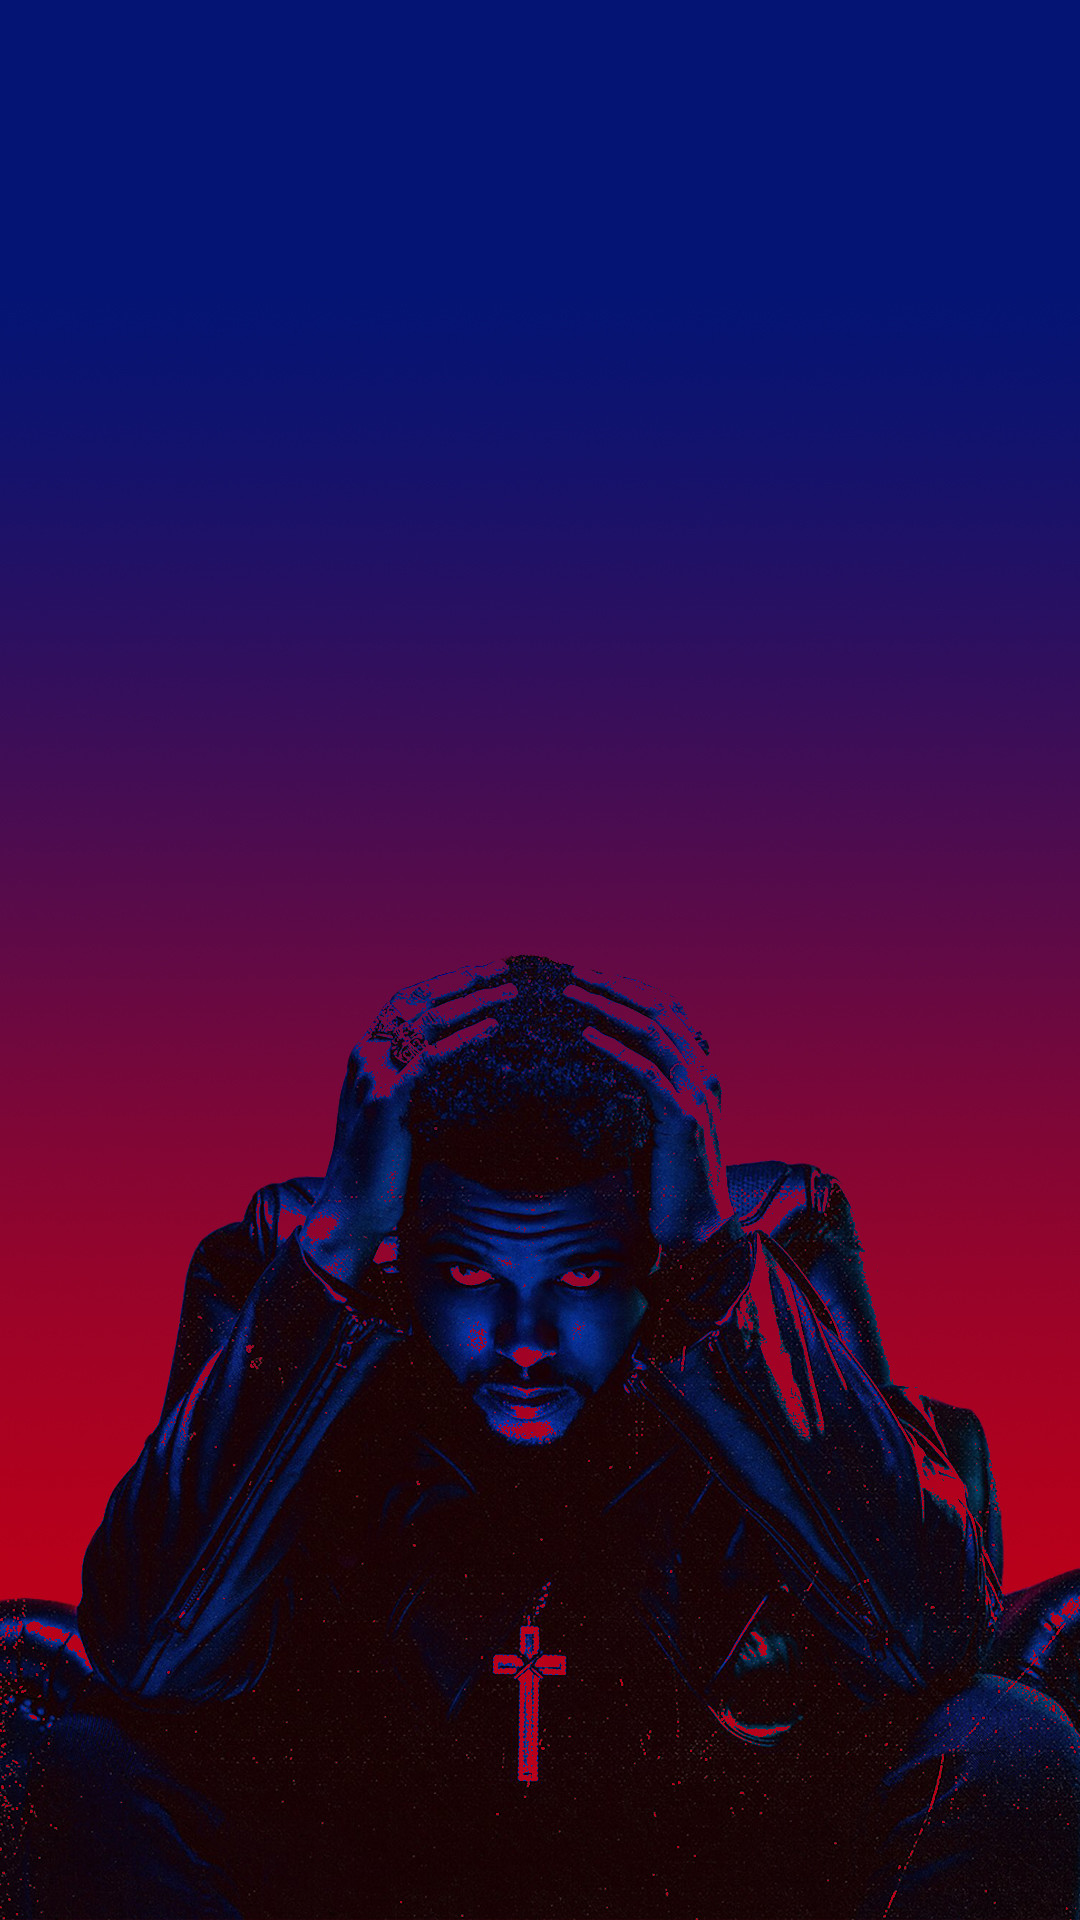 1080x1920 Starboy Custom iPhone 6 Plus Wallpaper by Trackos